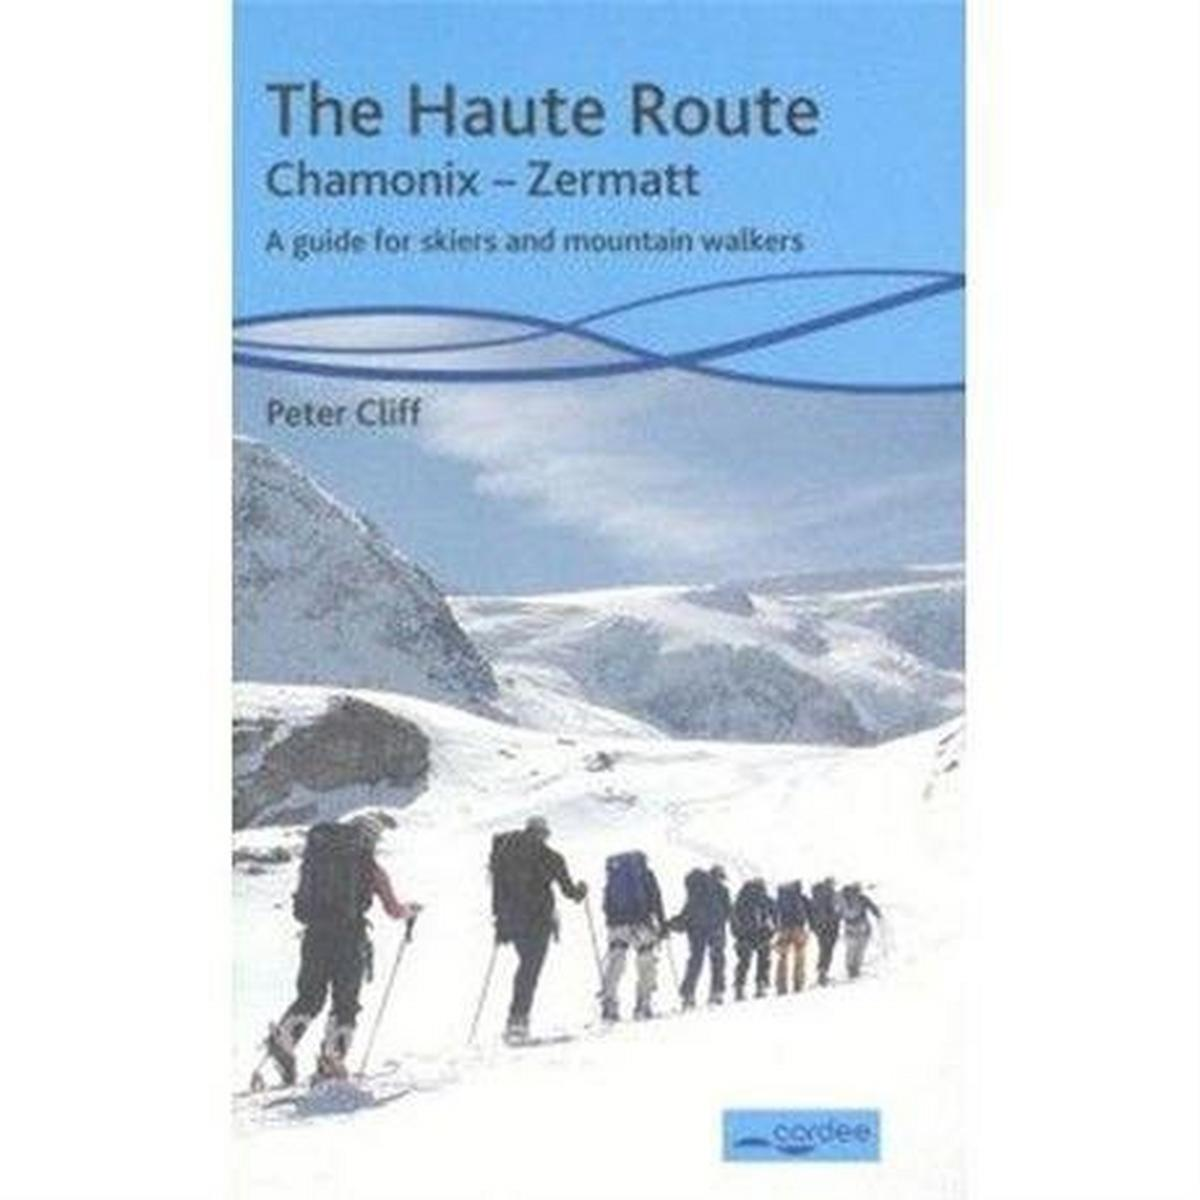 Miscellaneous Guide Book: The Haute Route: Chamonix-Zermatt: A Guide for Skiers and Walkers